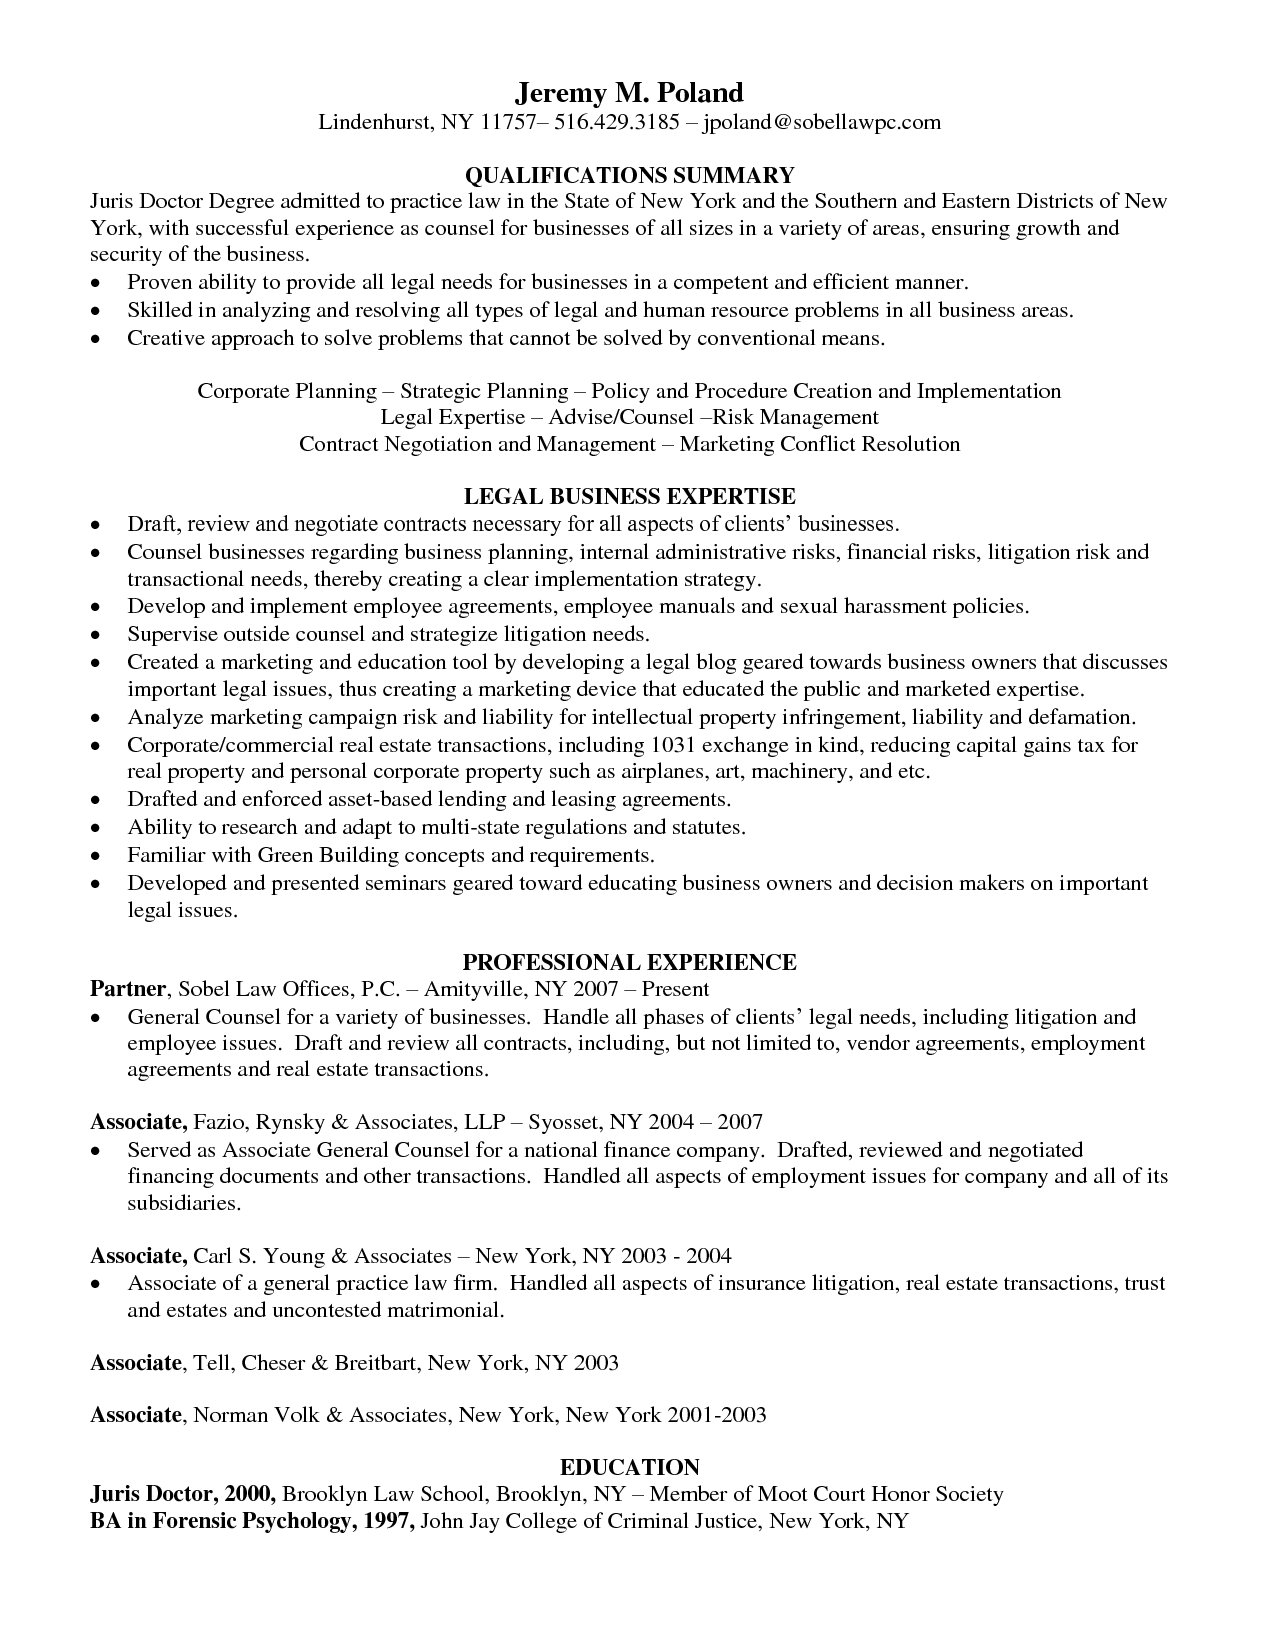 juris doctor resume